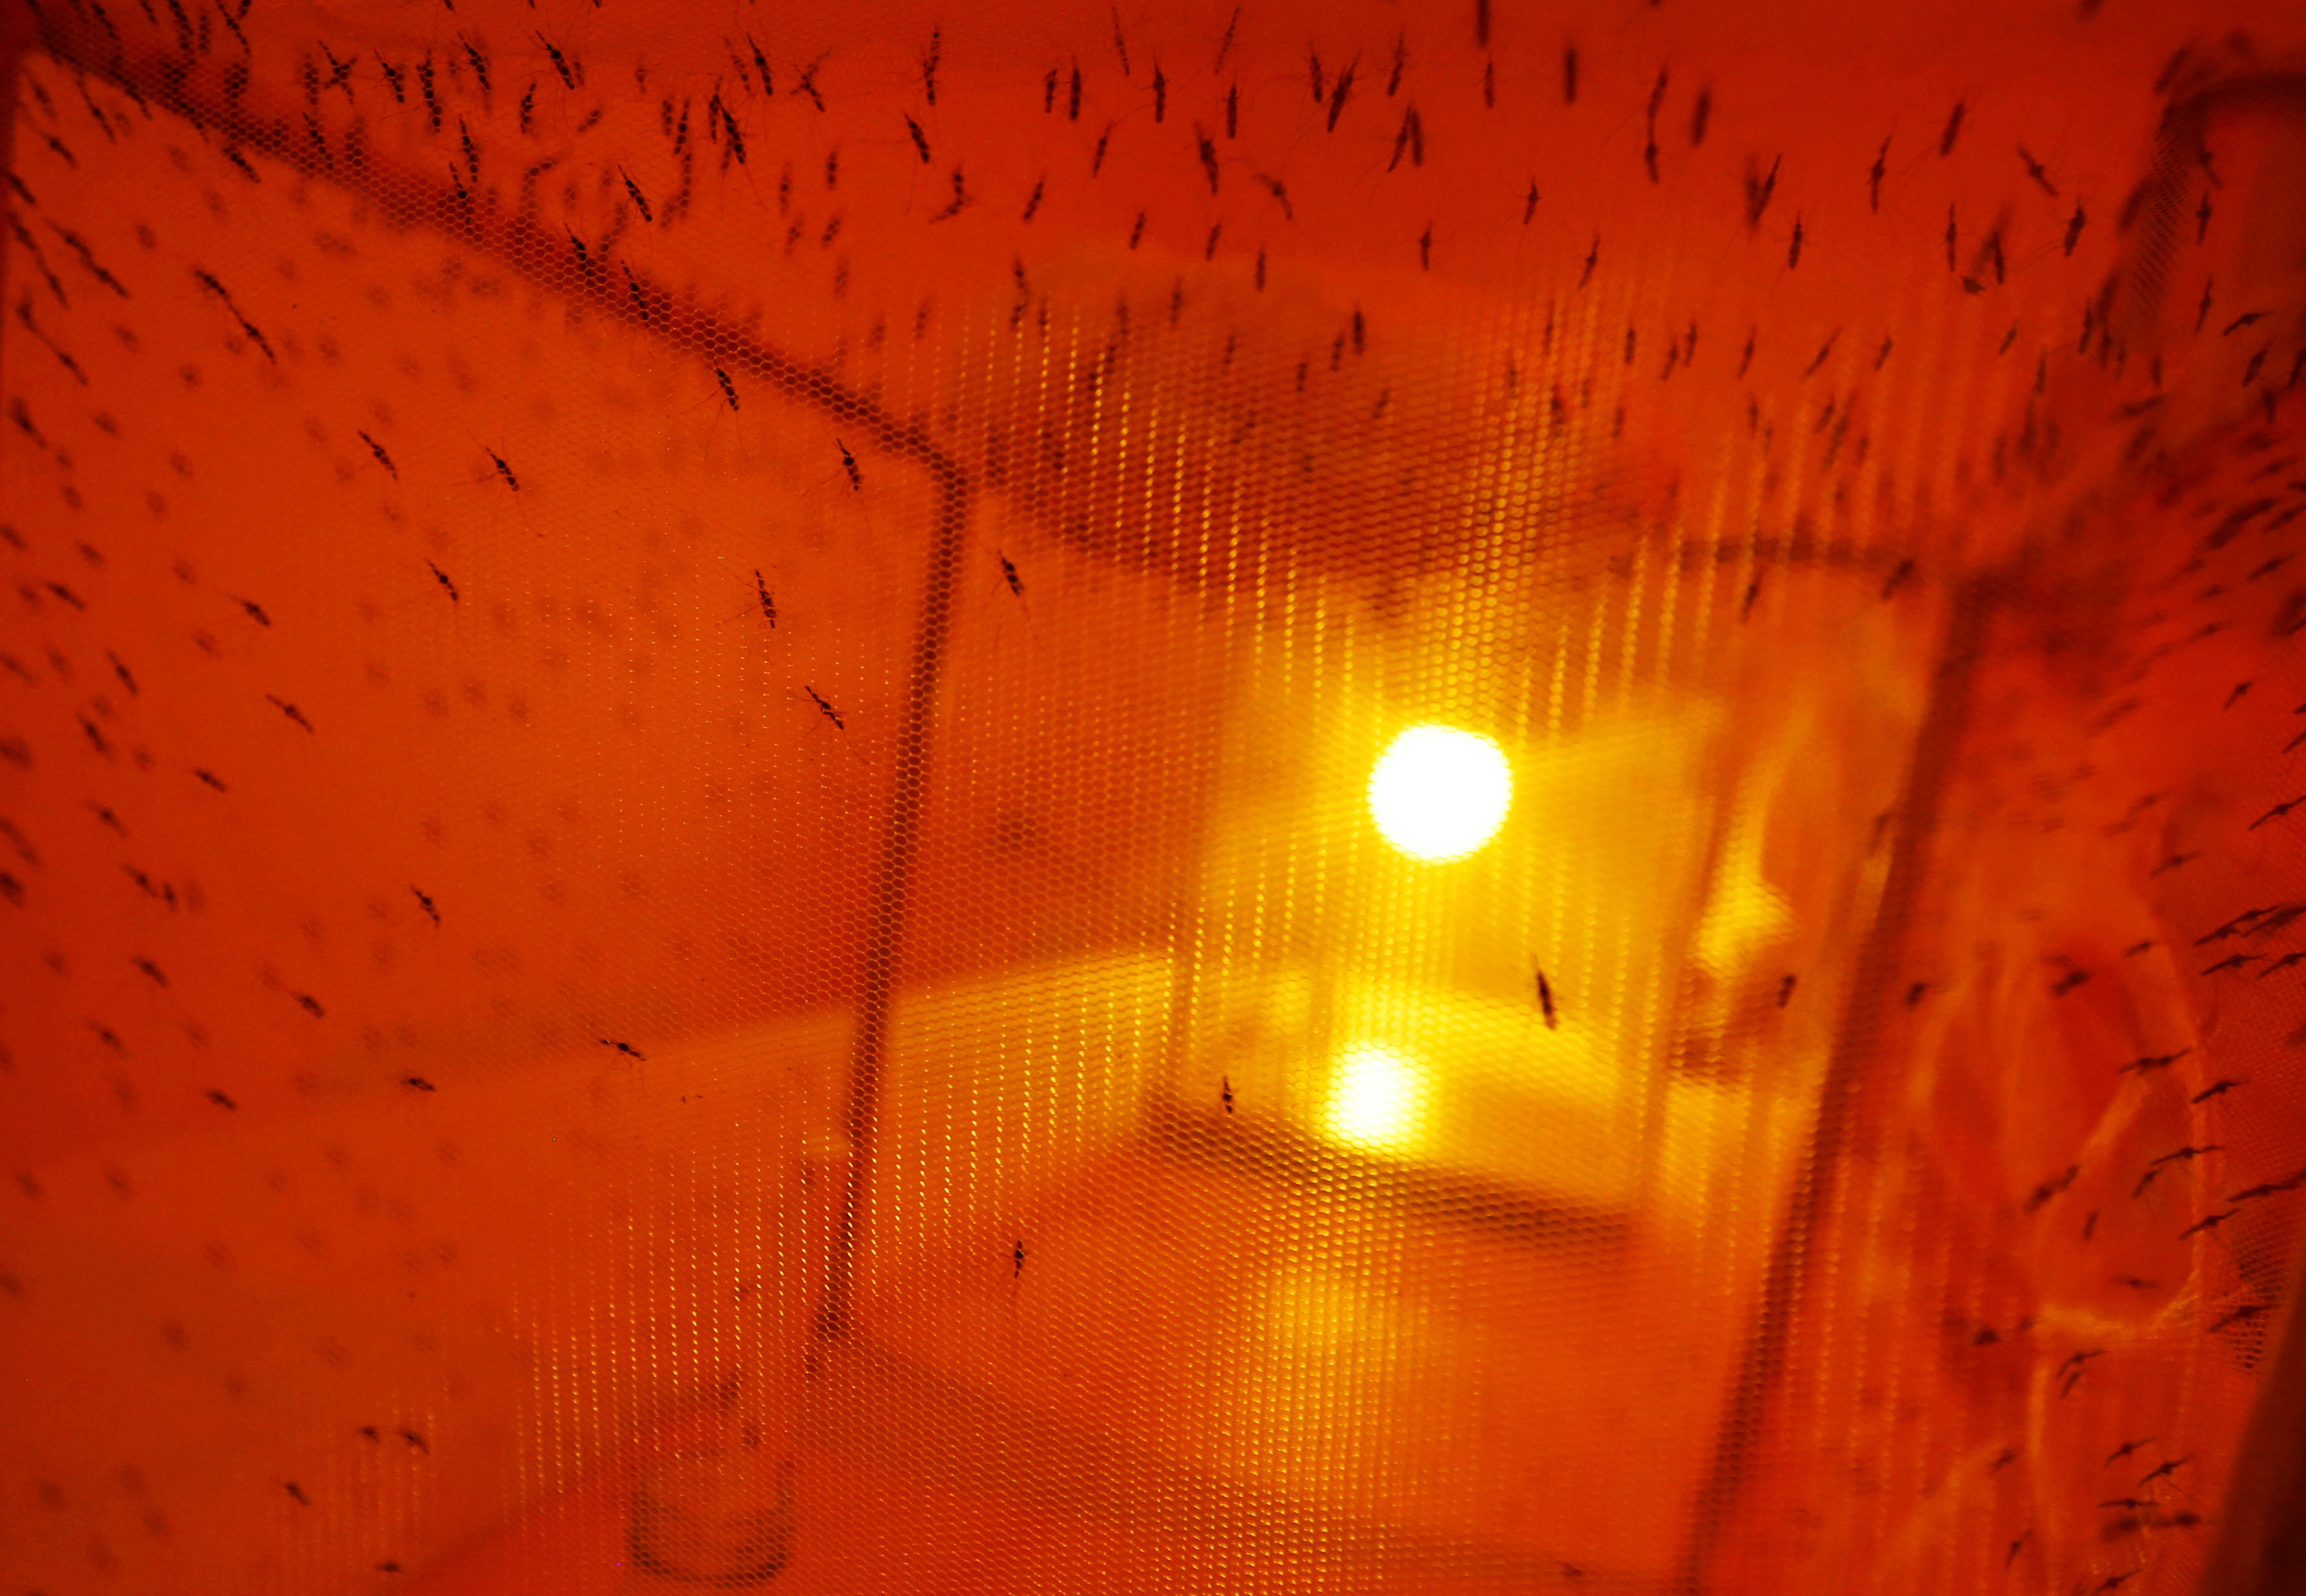 Mosquitoes used for research are seen inside a laboratory at the International Centre of Insect Physiology and Ecology (ICIPE) headquarters in Nairobi, Kenya May 11, 2020. Picture taken May 11, 2020. REUTERS/Jackson Njehia - RC22RG948W07